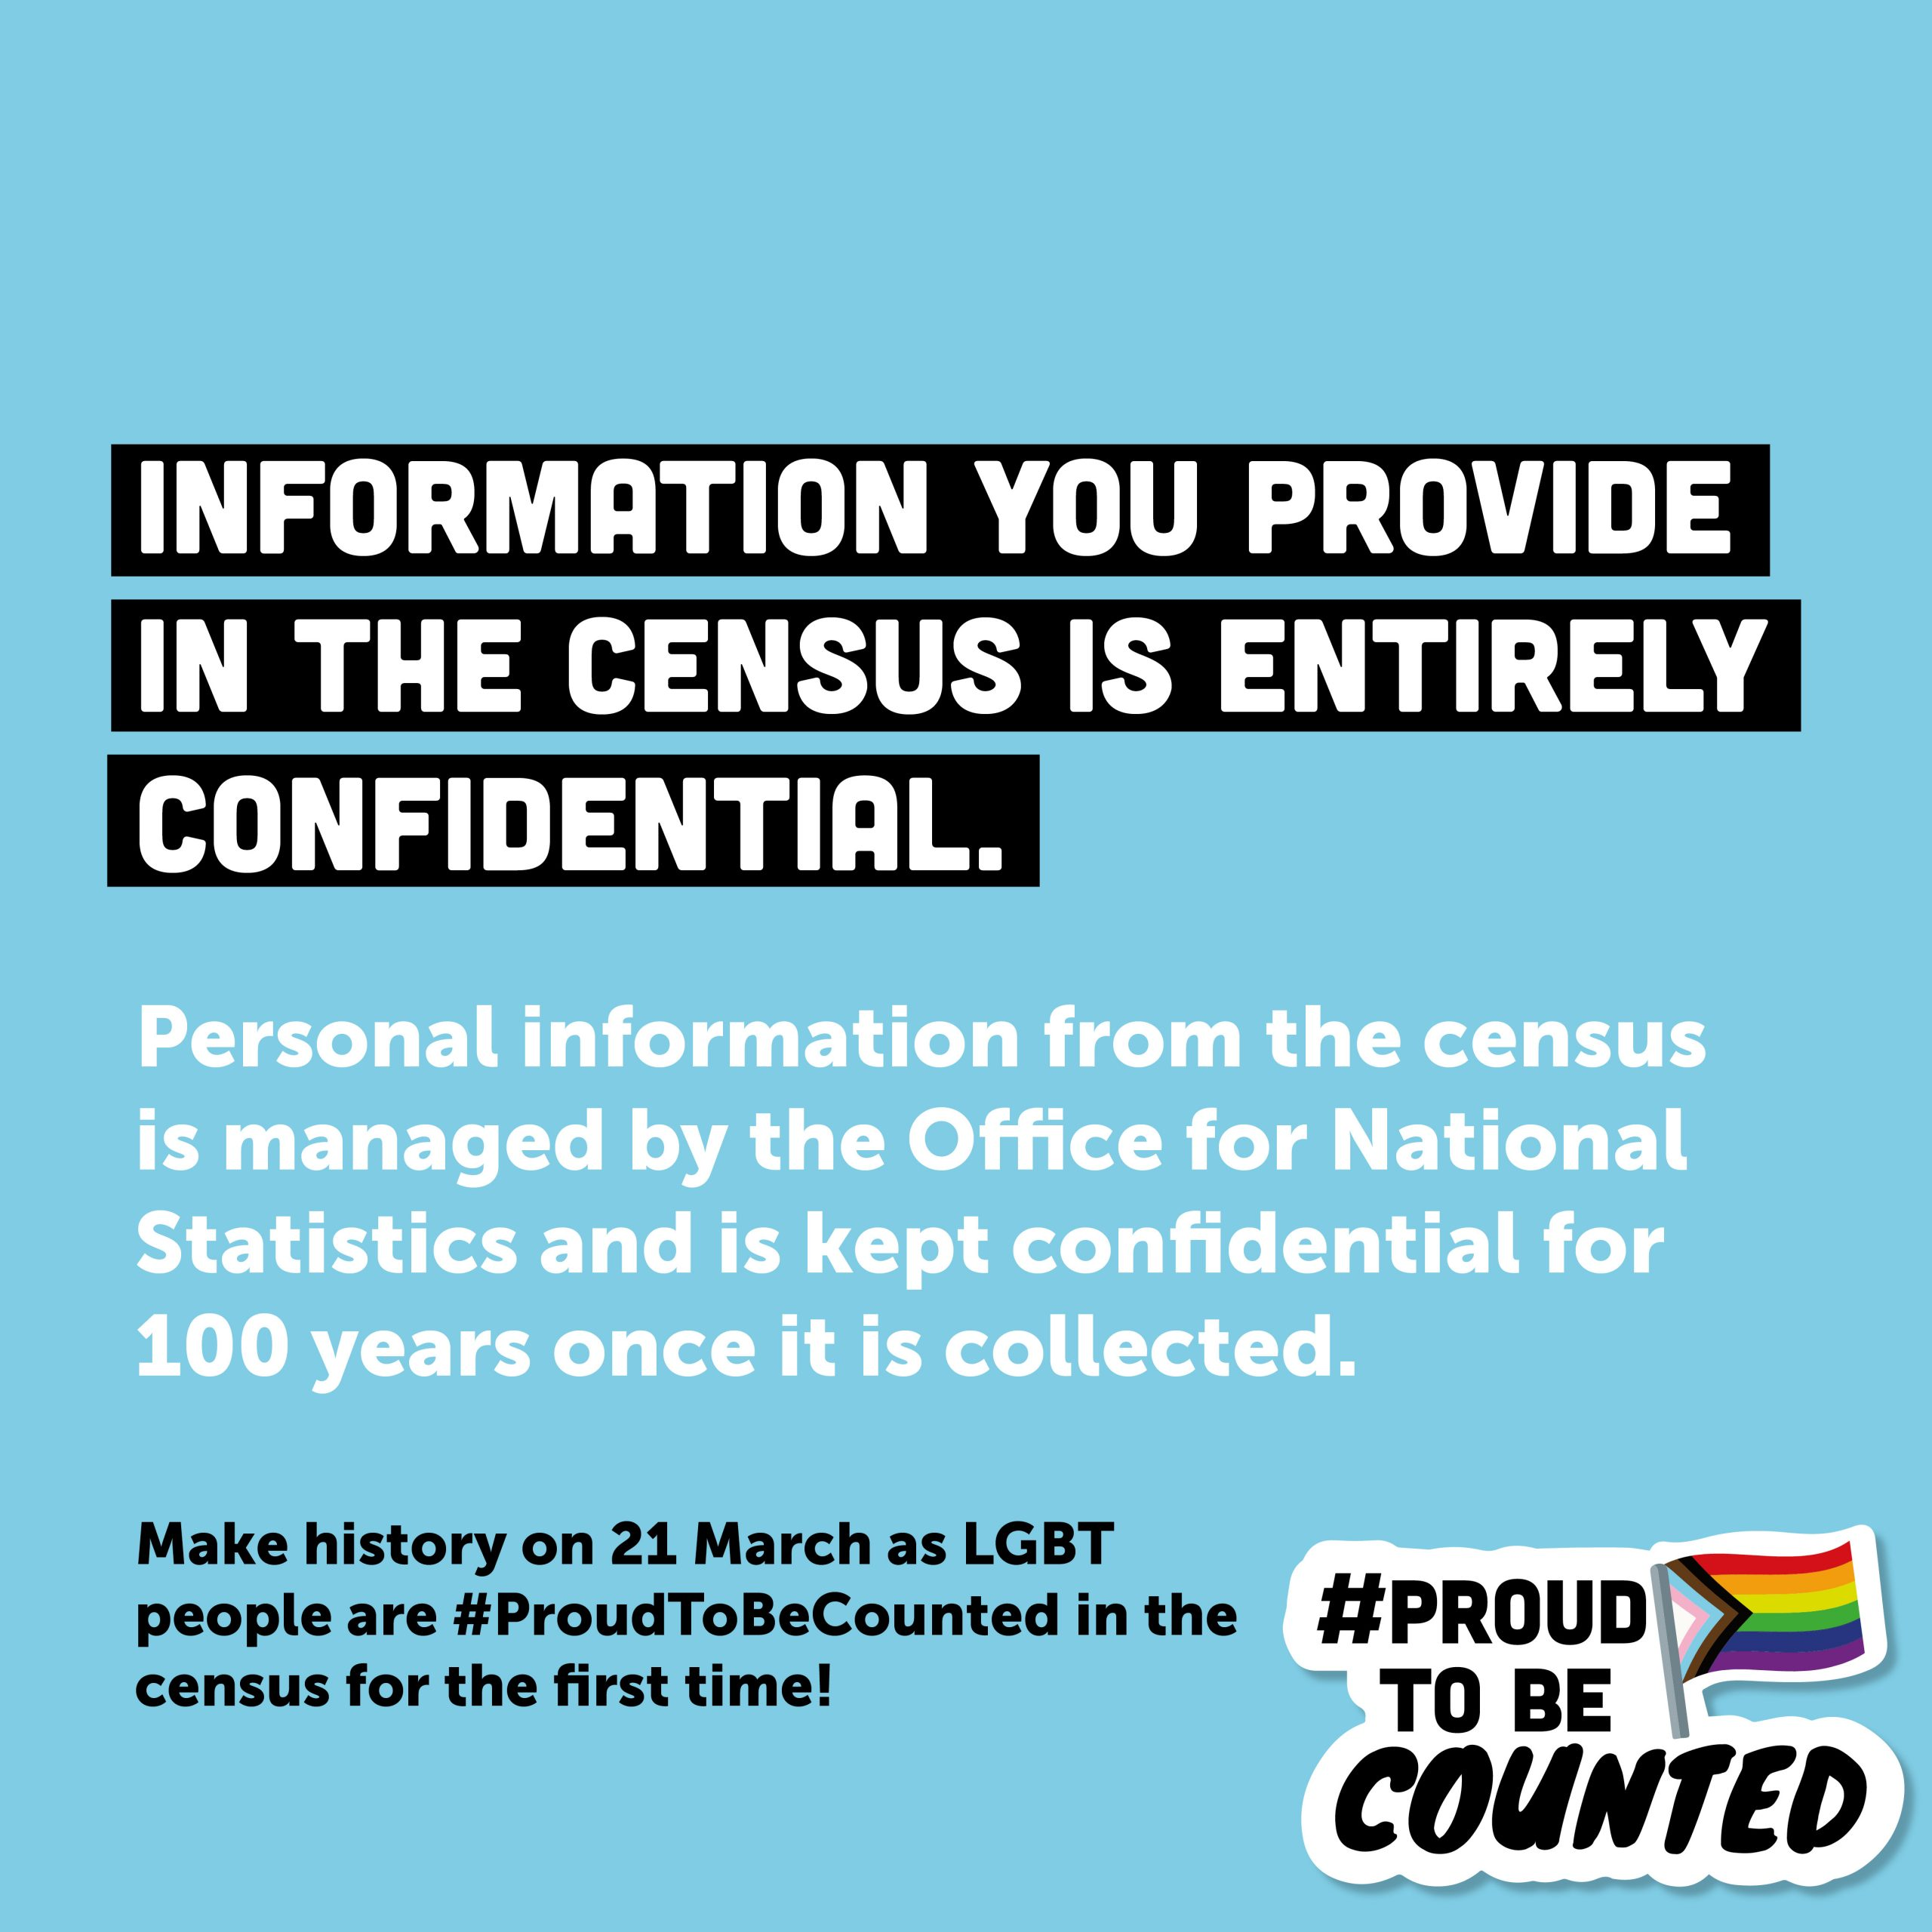 Census 2021 personal information is kept confidential for 100 years